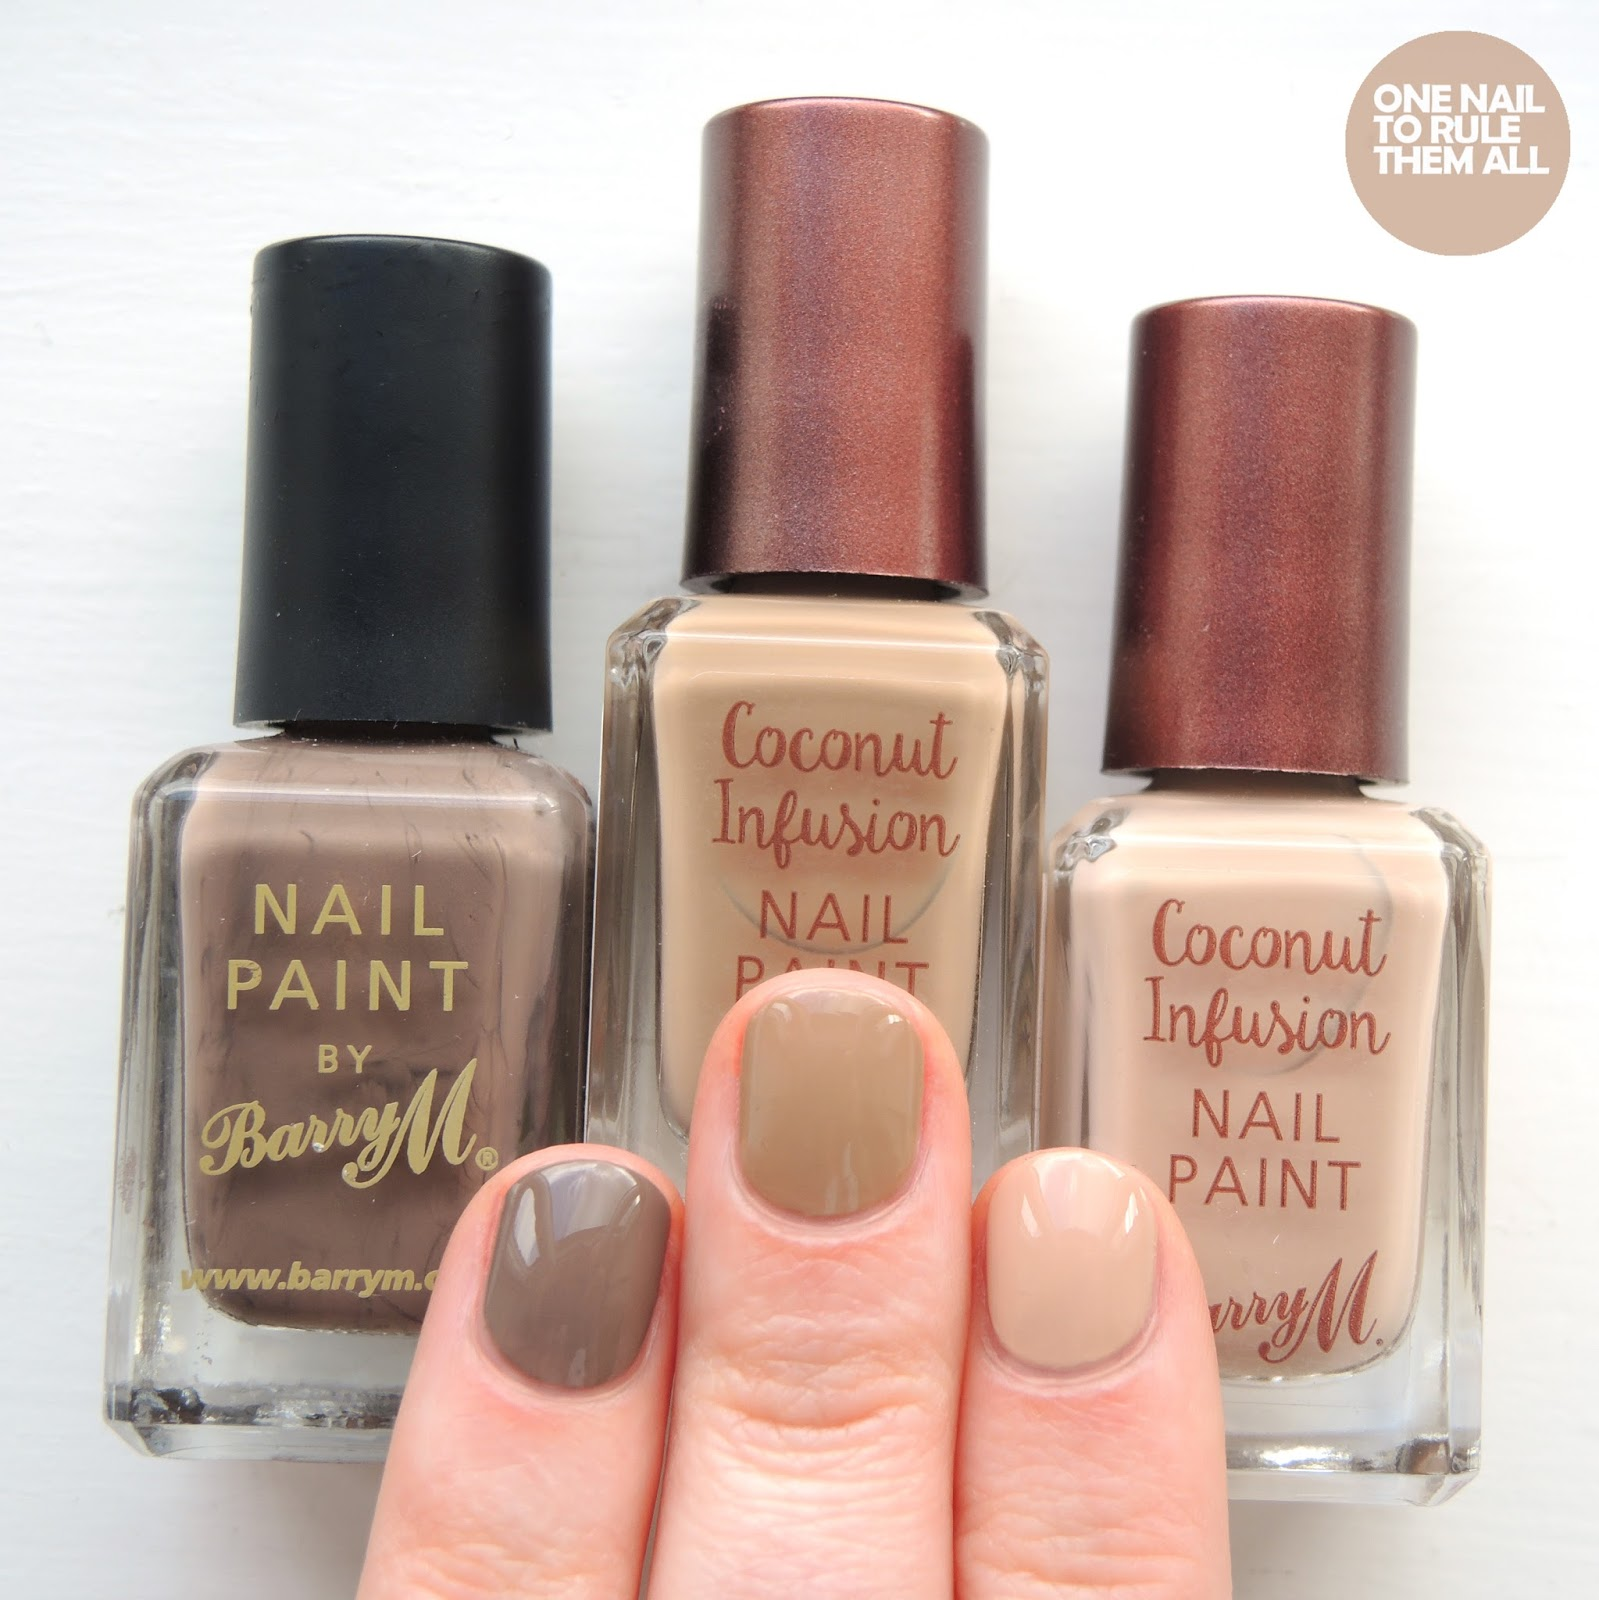 One Nail To Rule Them All Barry M Nail Art Pens Review: Coconut Infusion Full Collection Review